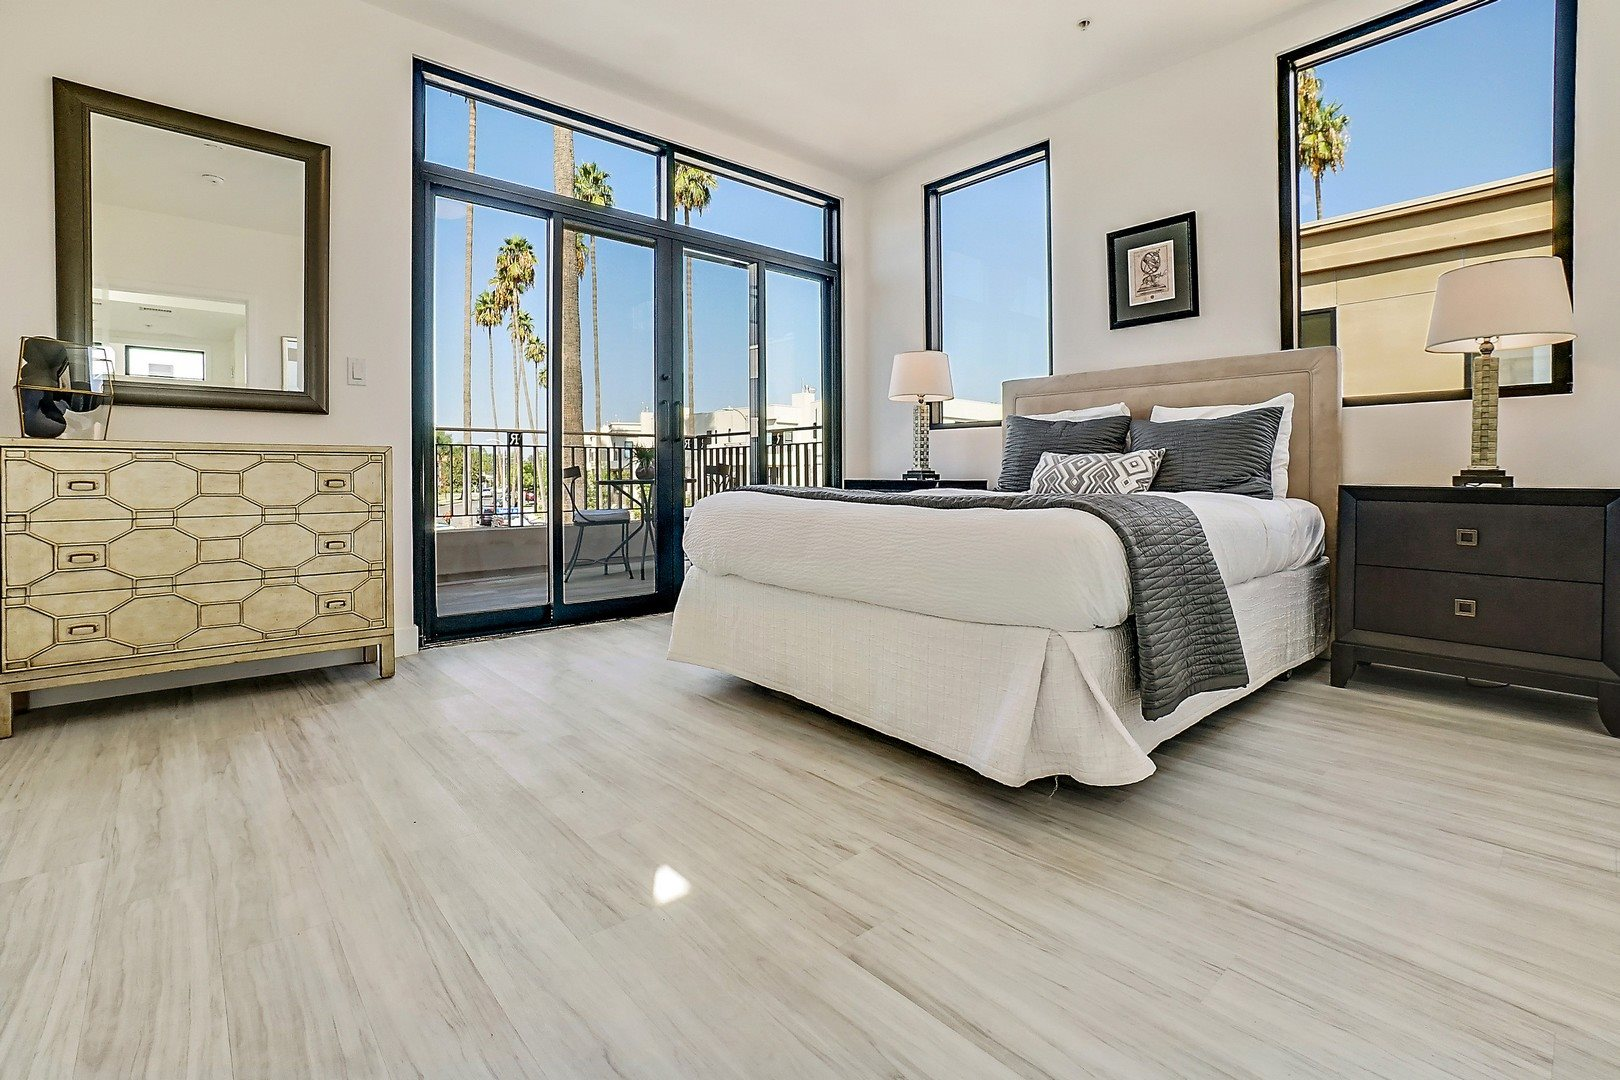 Two Bedroom Apartments in Tarzana CA - The Residences at Village Walk Bedroom